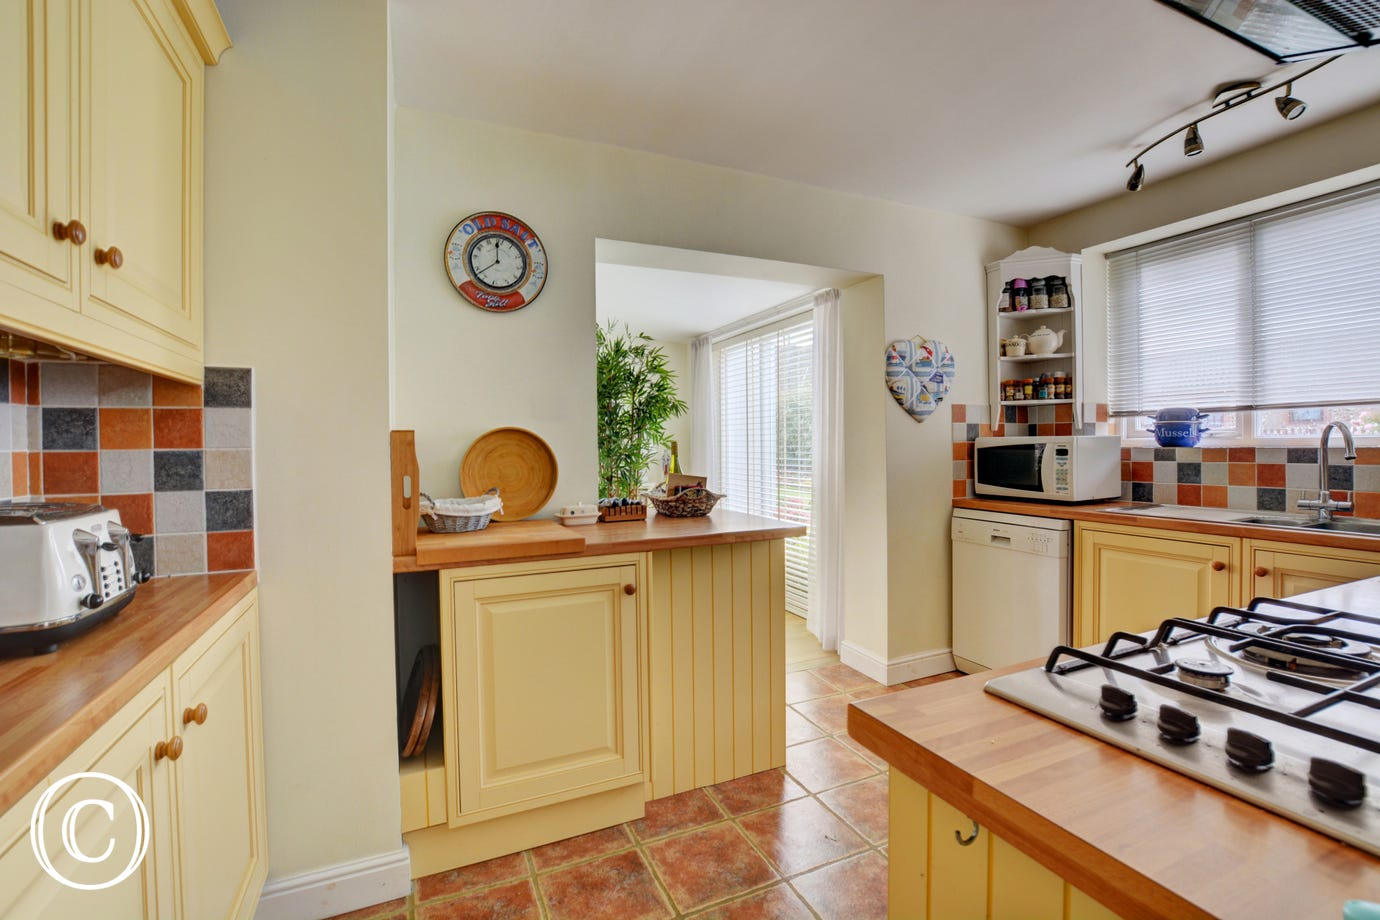 Kitchen with  with built in electric oven, gas hob, freestanding American fridge freezer, dishwasher, microwave and drinks fridge